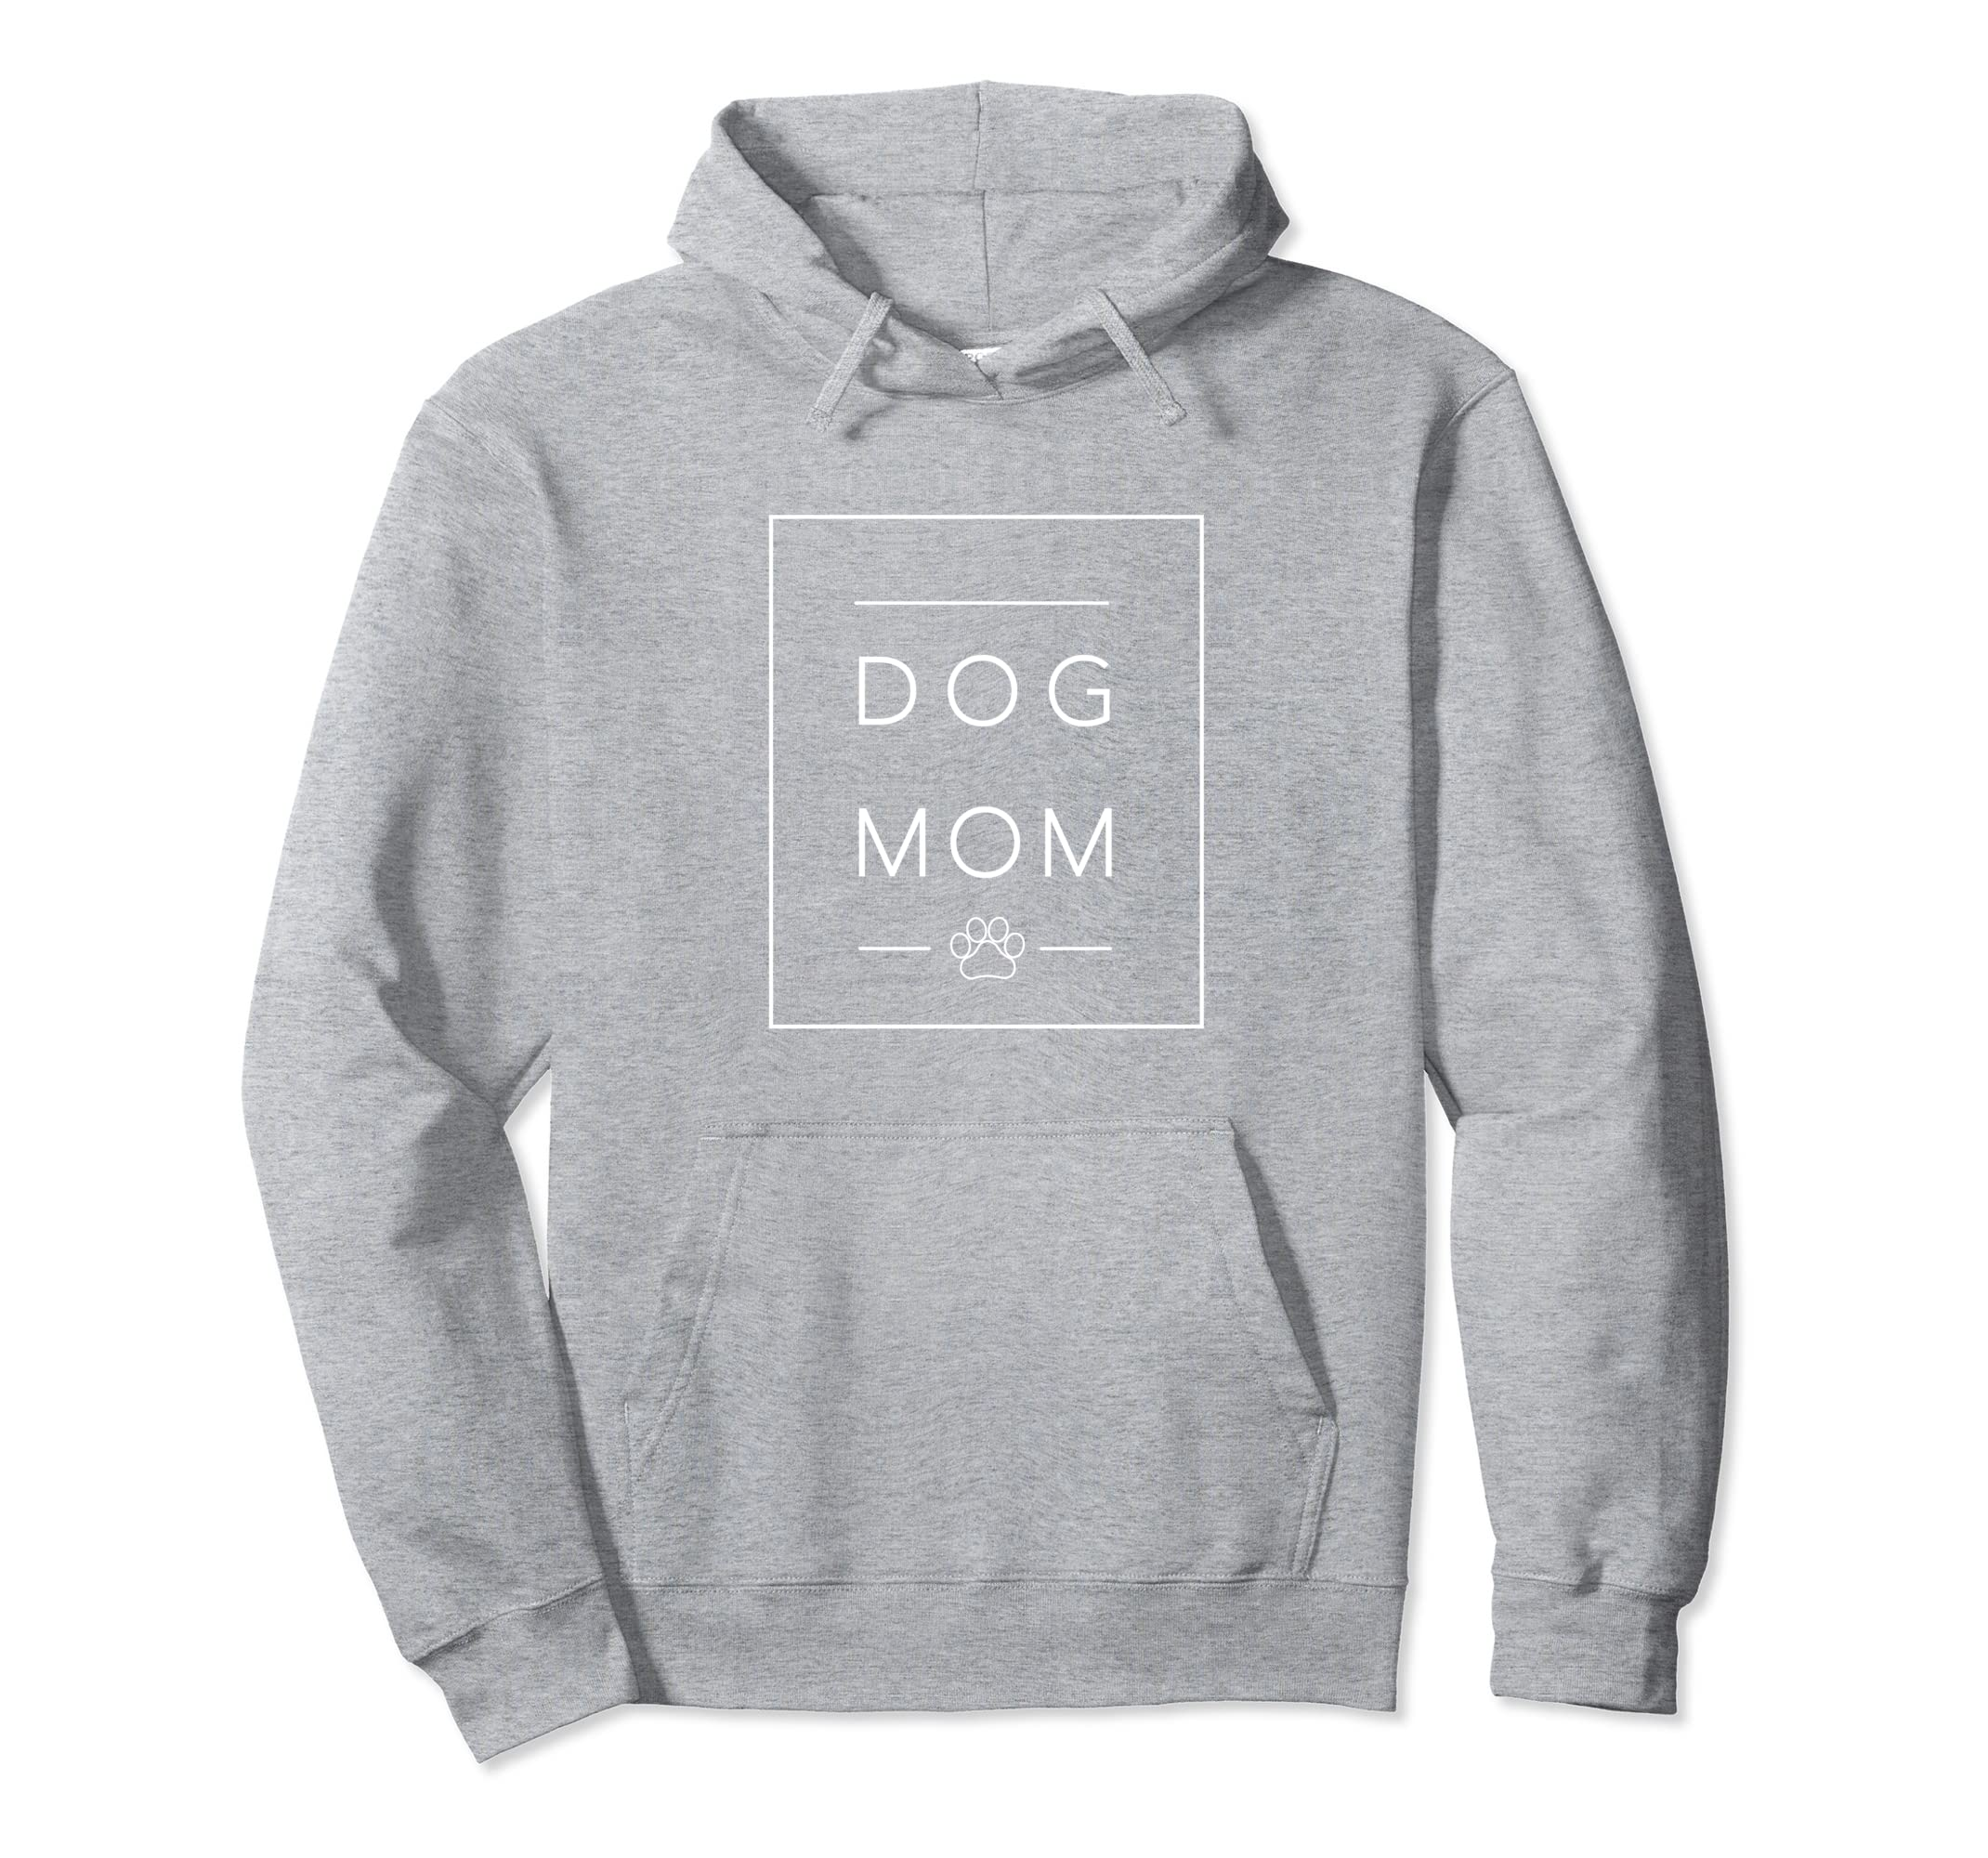 Dog Mom Paw Print Graphic Hoodie|Rescue Animal Lover Apparel-azvn